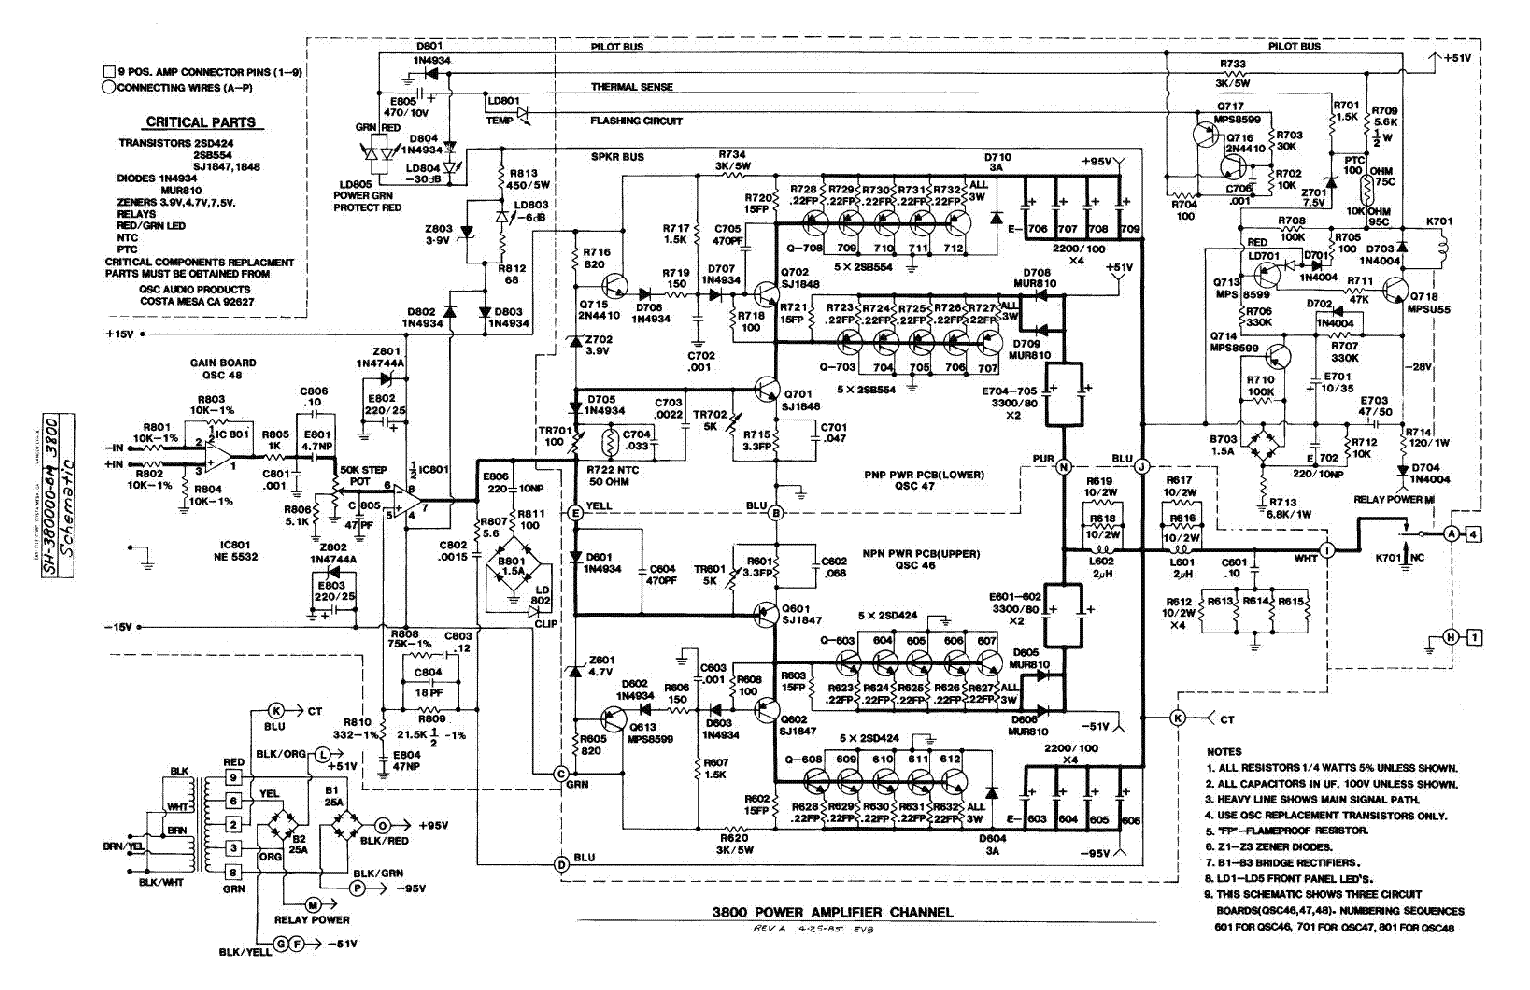 Ford Maverick Wiring Diagram Get Free Image About. Ford